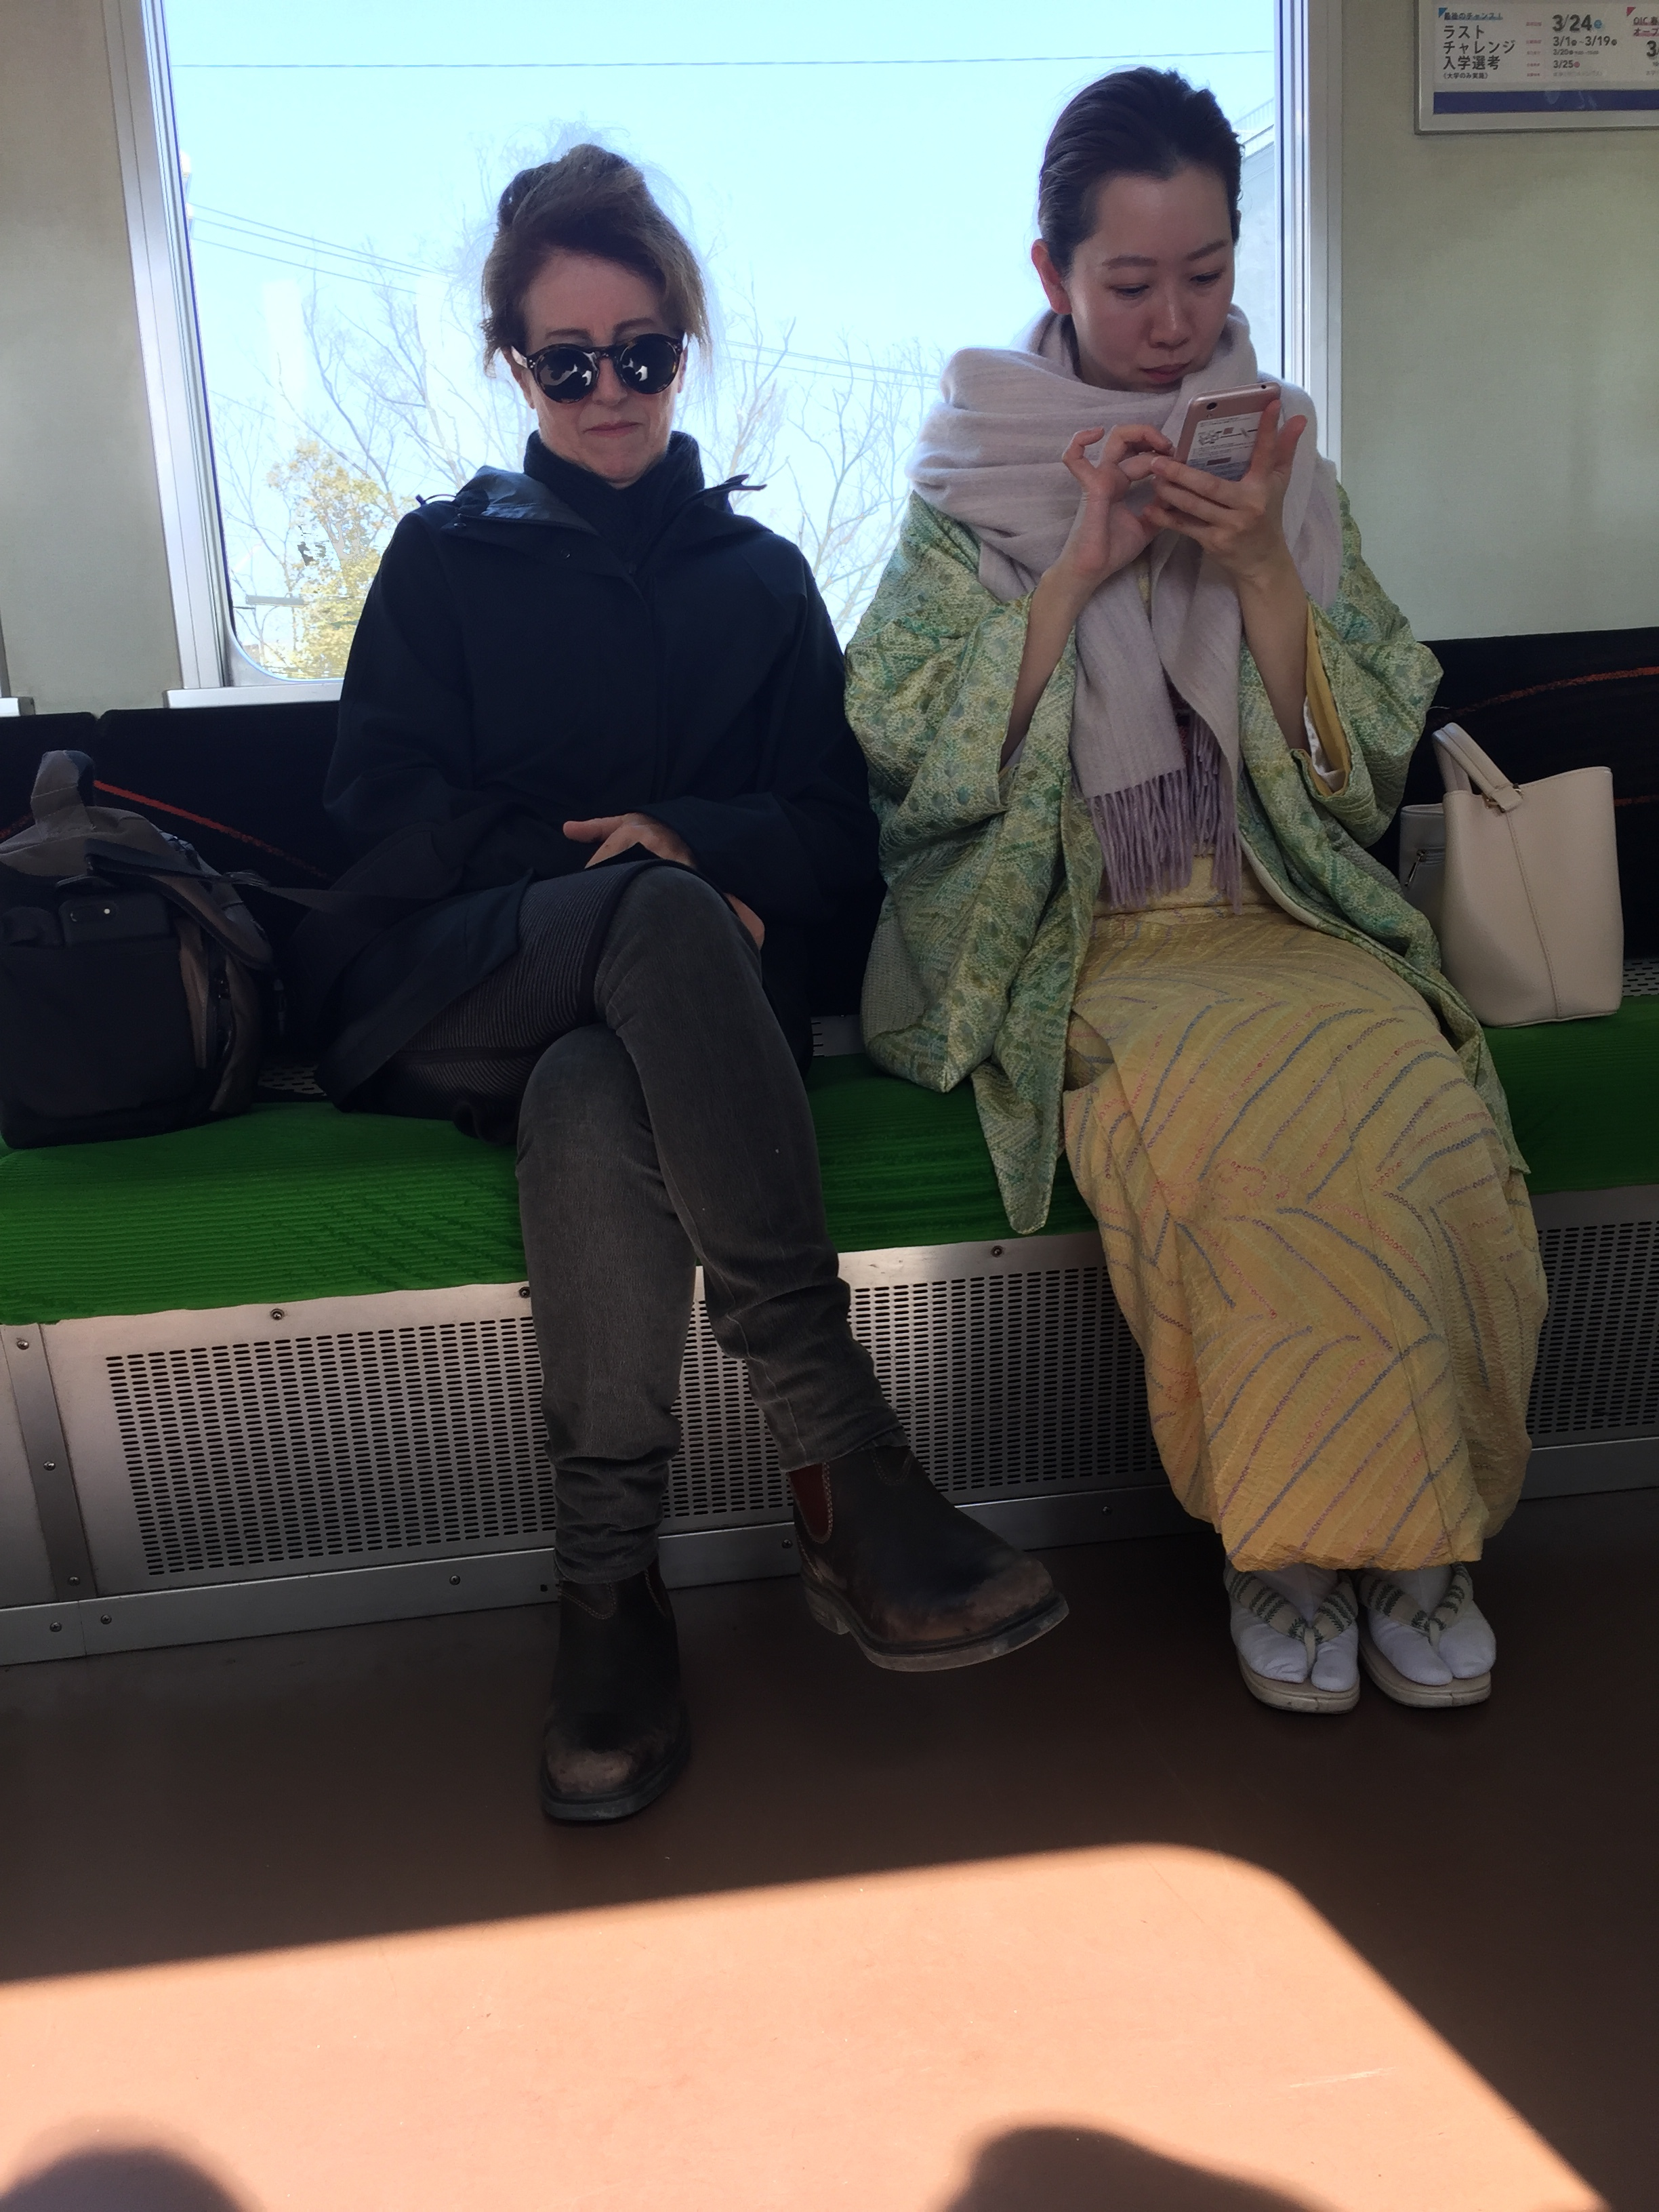 All this while Gillian is travelling through the Japanese countryside, looking CHIC AS next to her new friend.